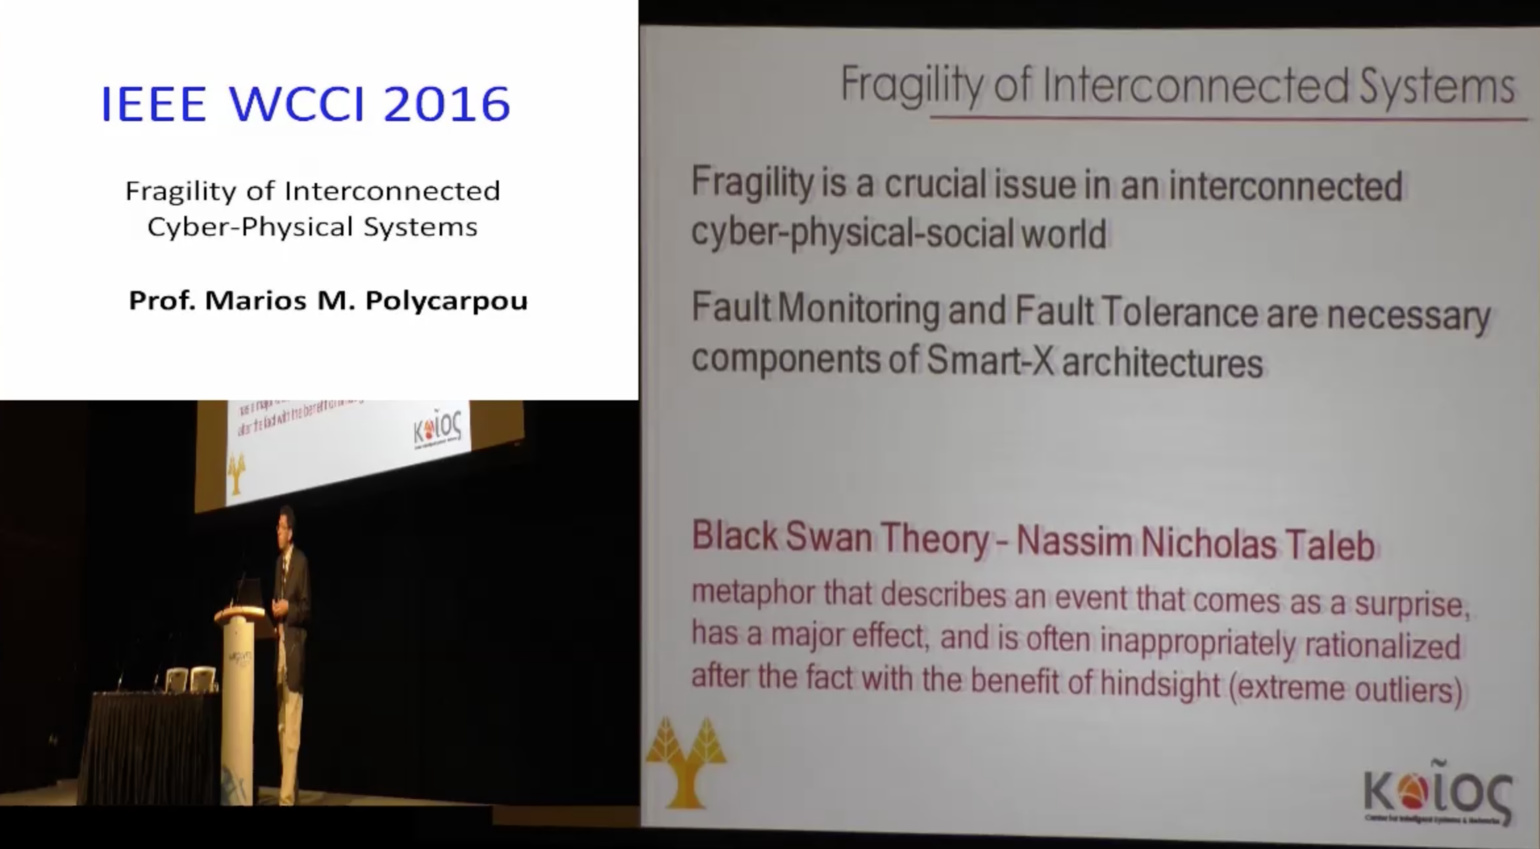 Fragility of Interconnected Cyber-Physical Systems - Marios M. Polycarpou - WCCI 2016